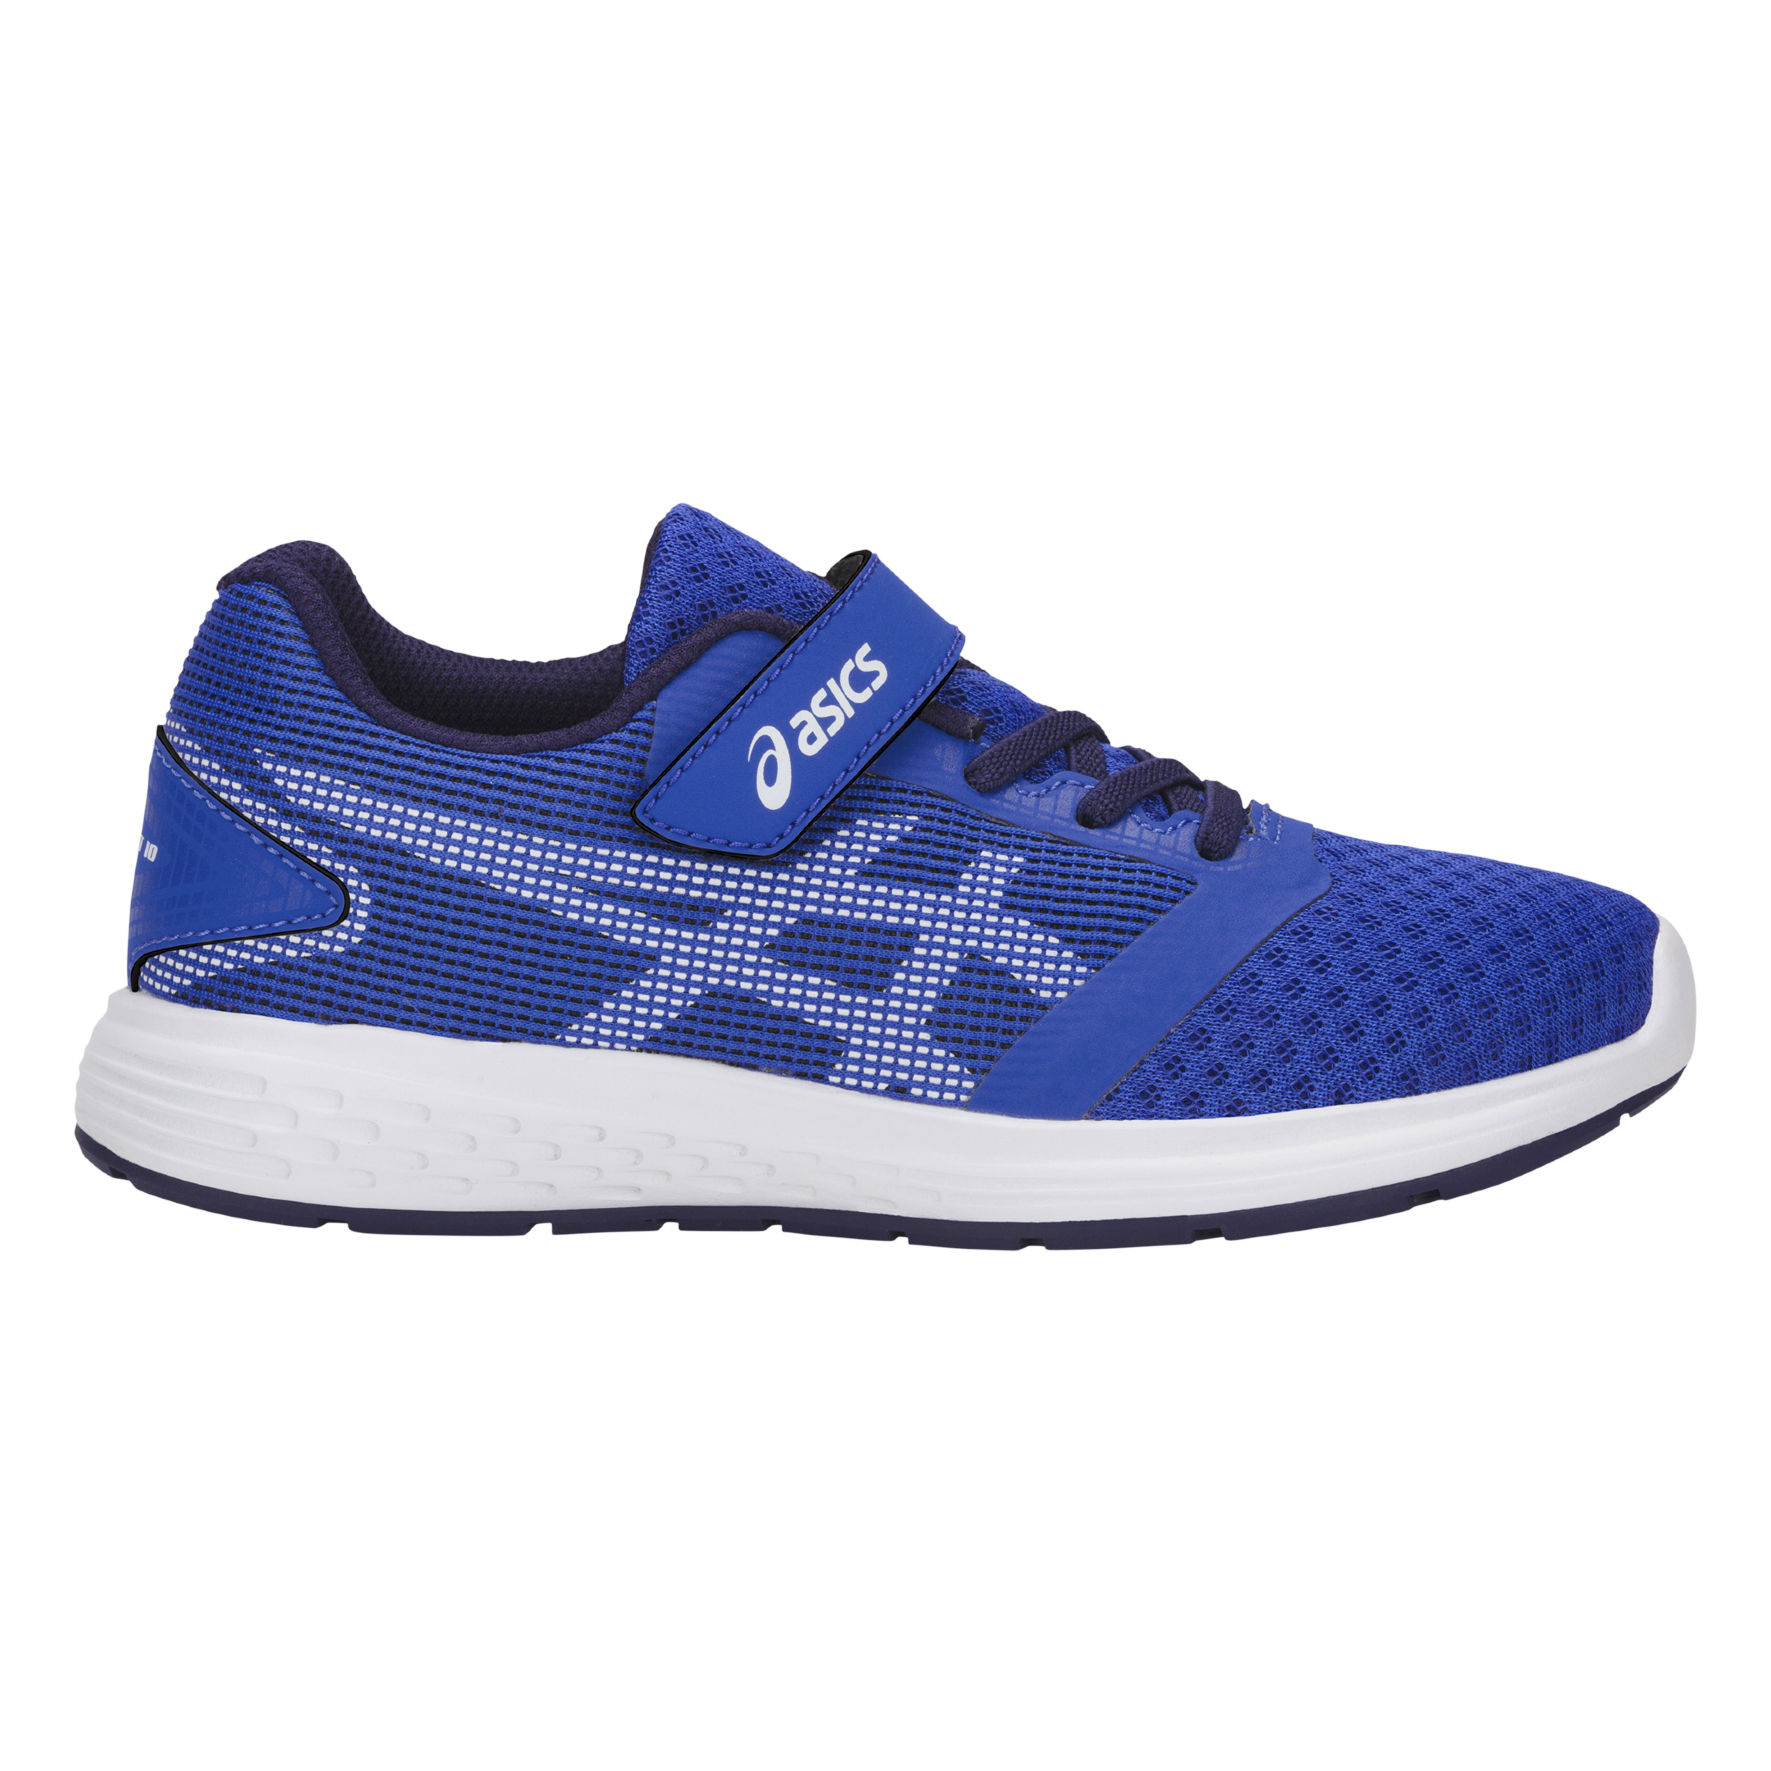 Asics Patriot 10 PS (Blau)